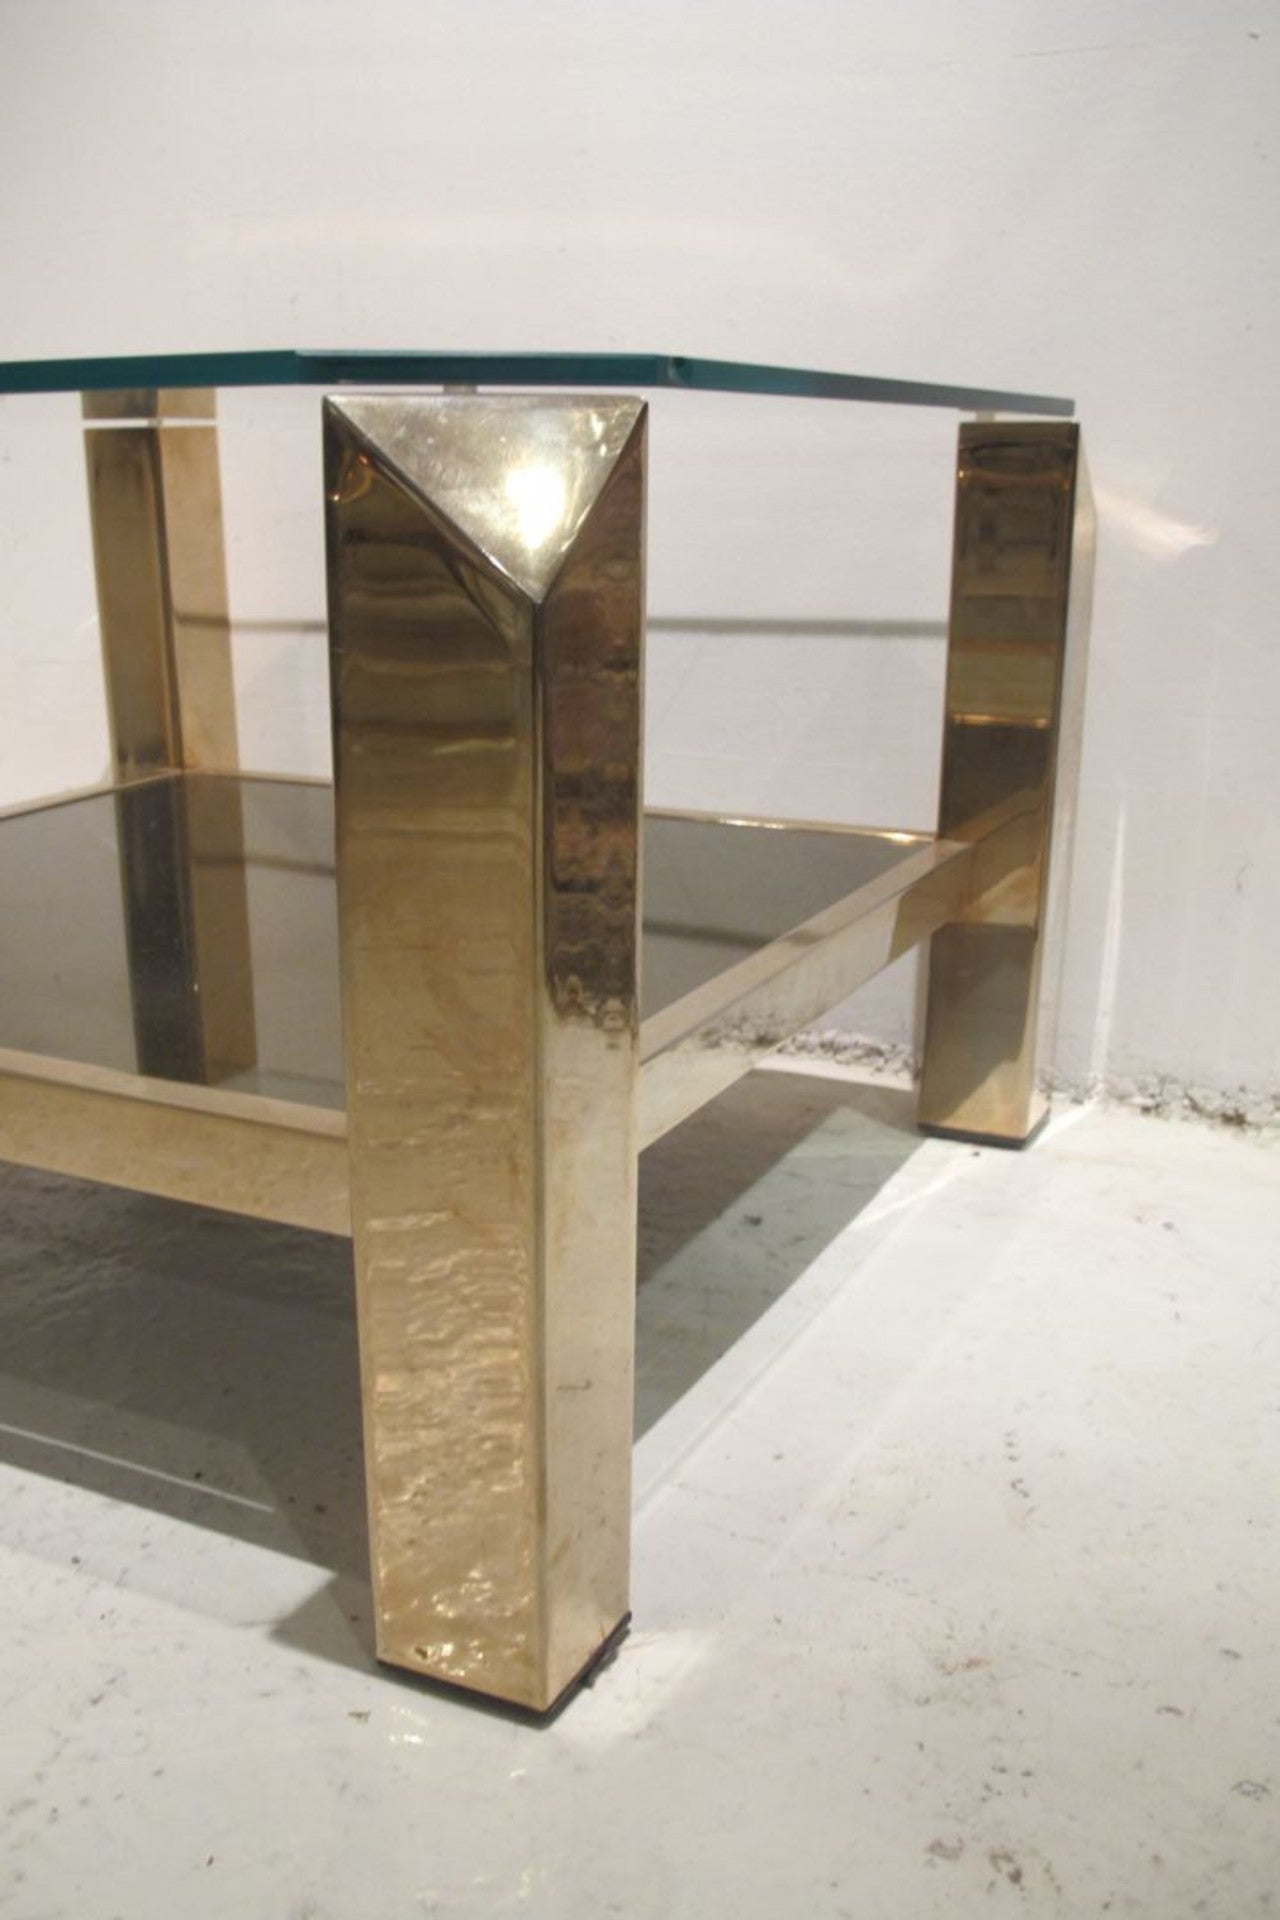 X Stylish 1970s Faceted Corner Brass and Glass Side Table with Mirrored Lower Tier